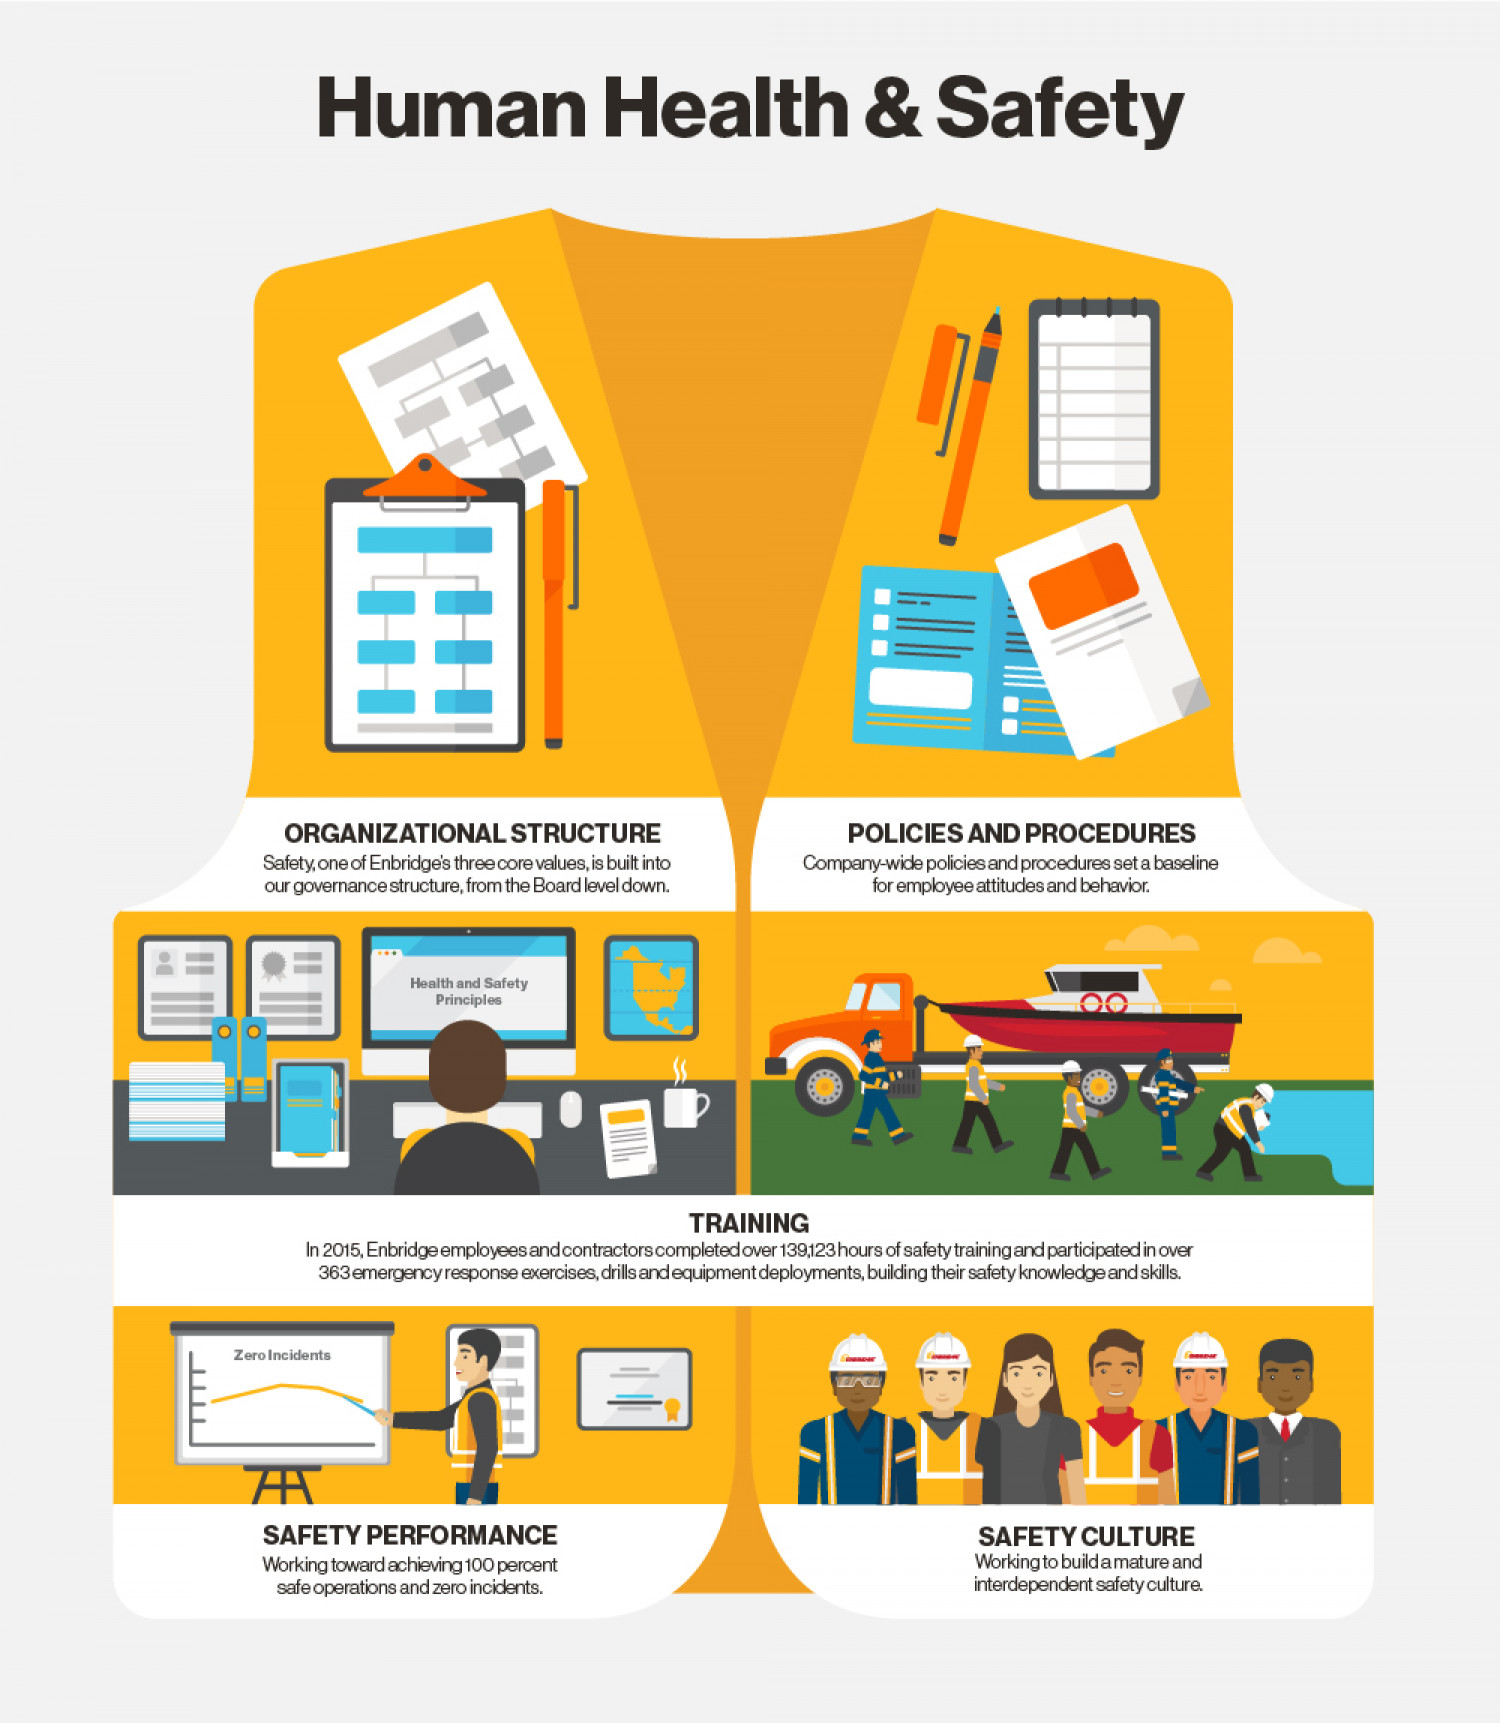 Human Health & Safety Infographic